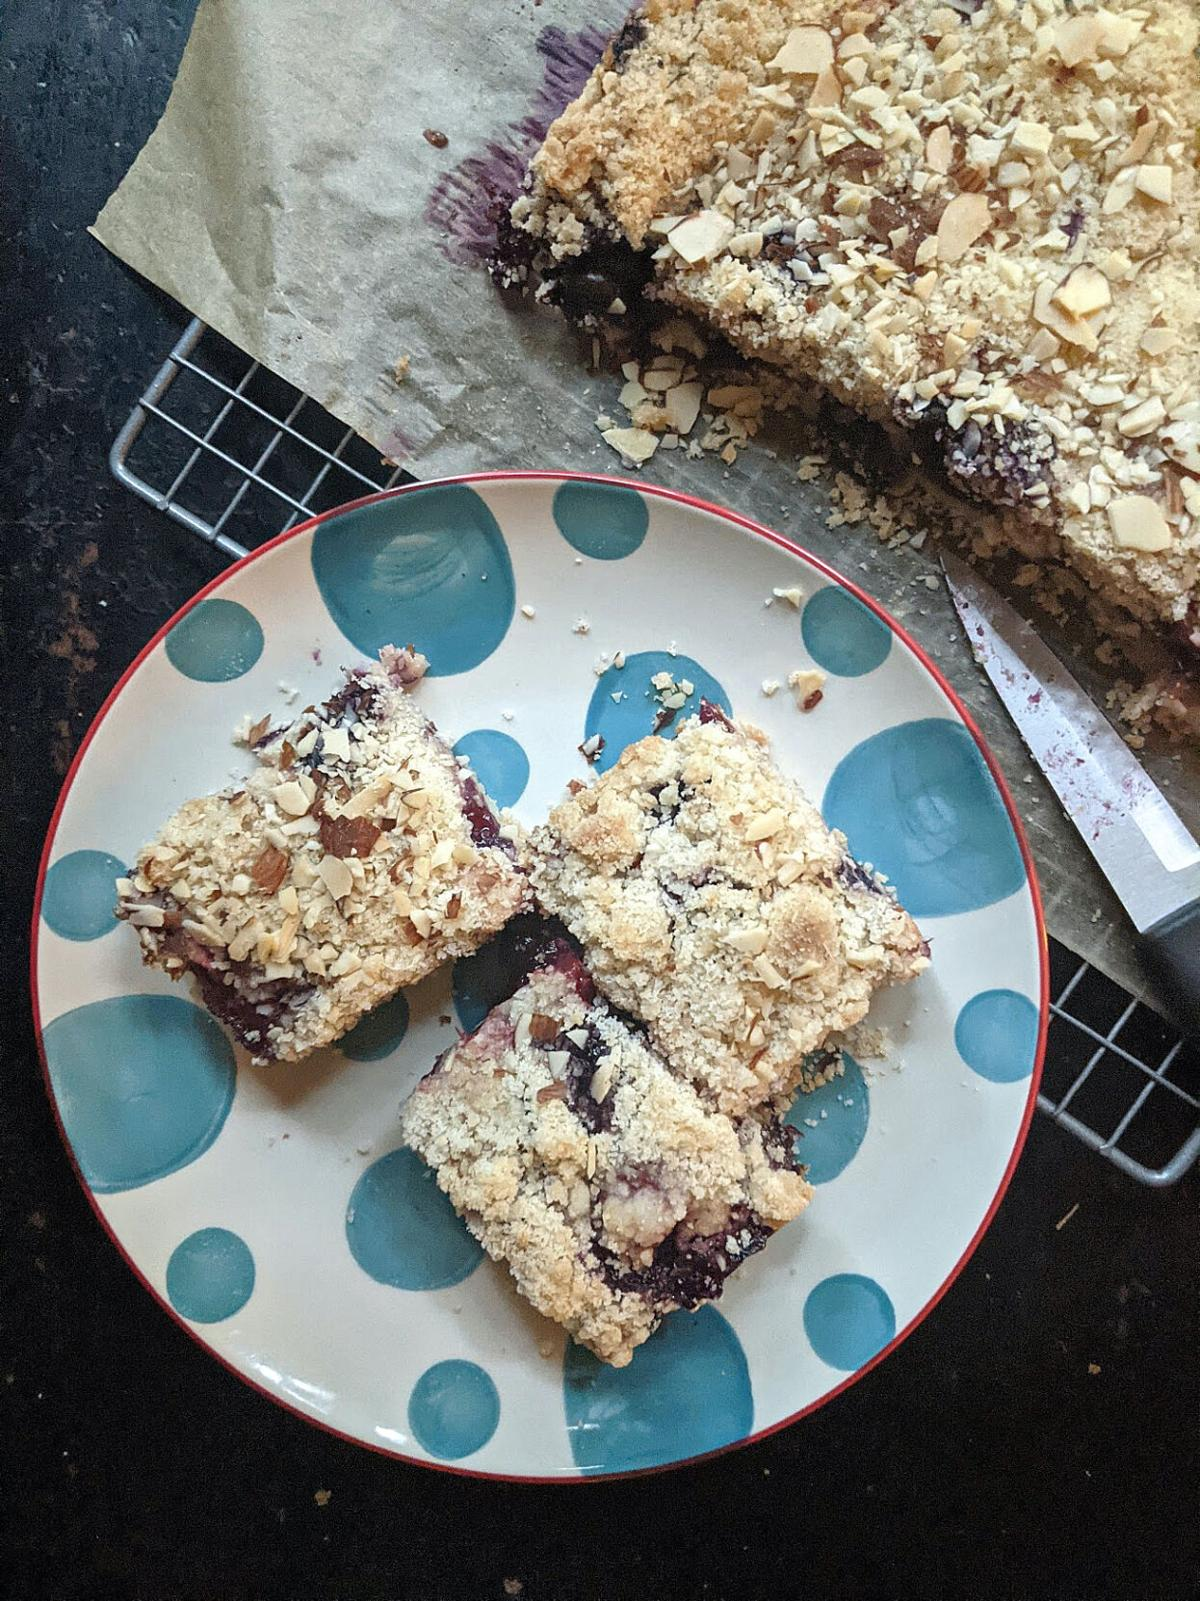 FOOD-STRAWBERRY-BLUEBERRY-CRUMBLE-BARS-2-PG